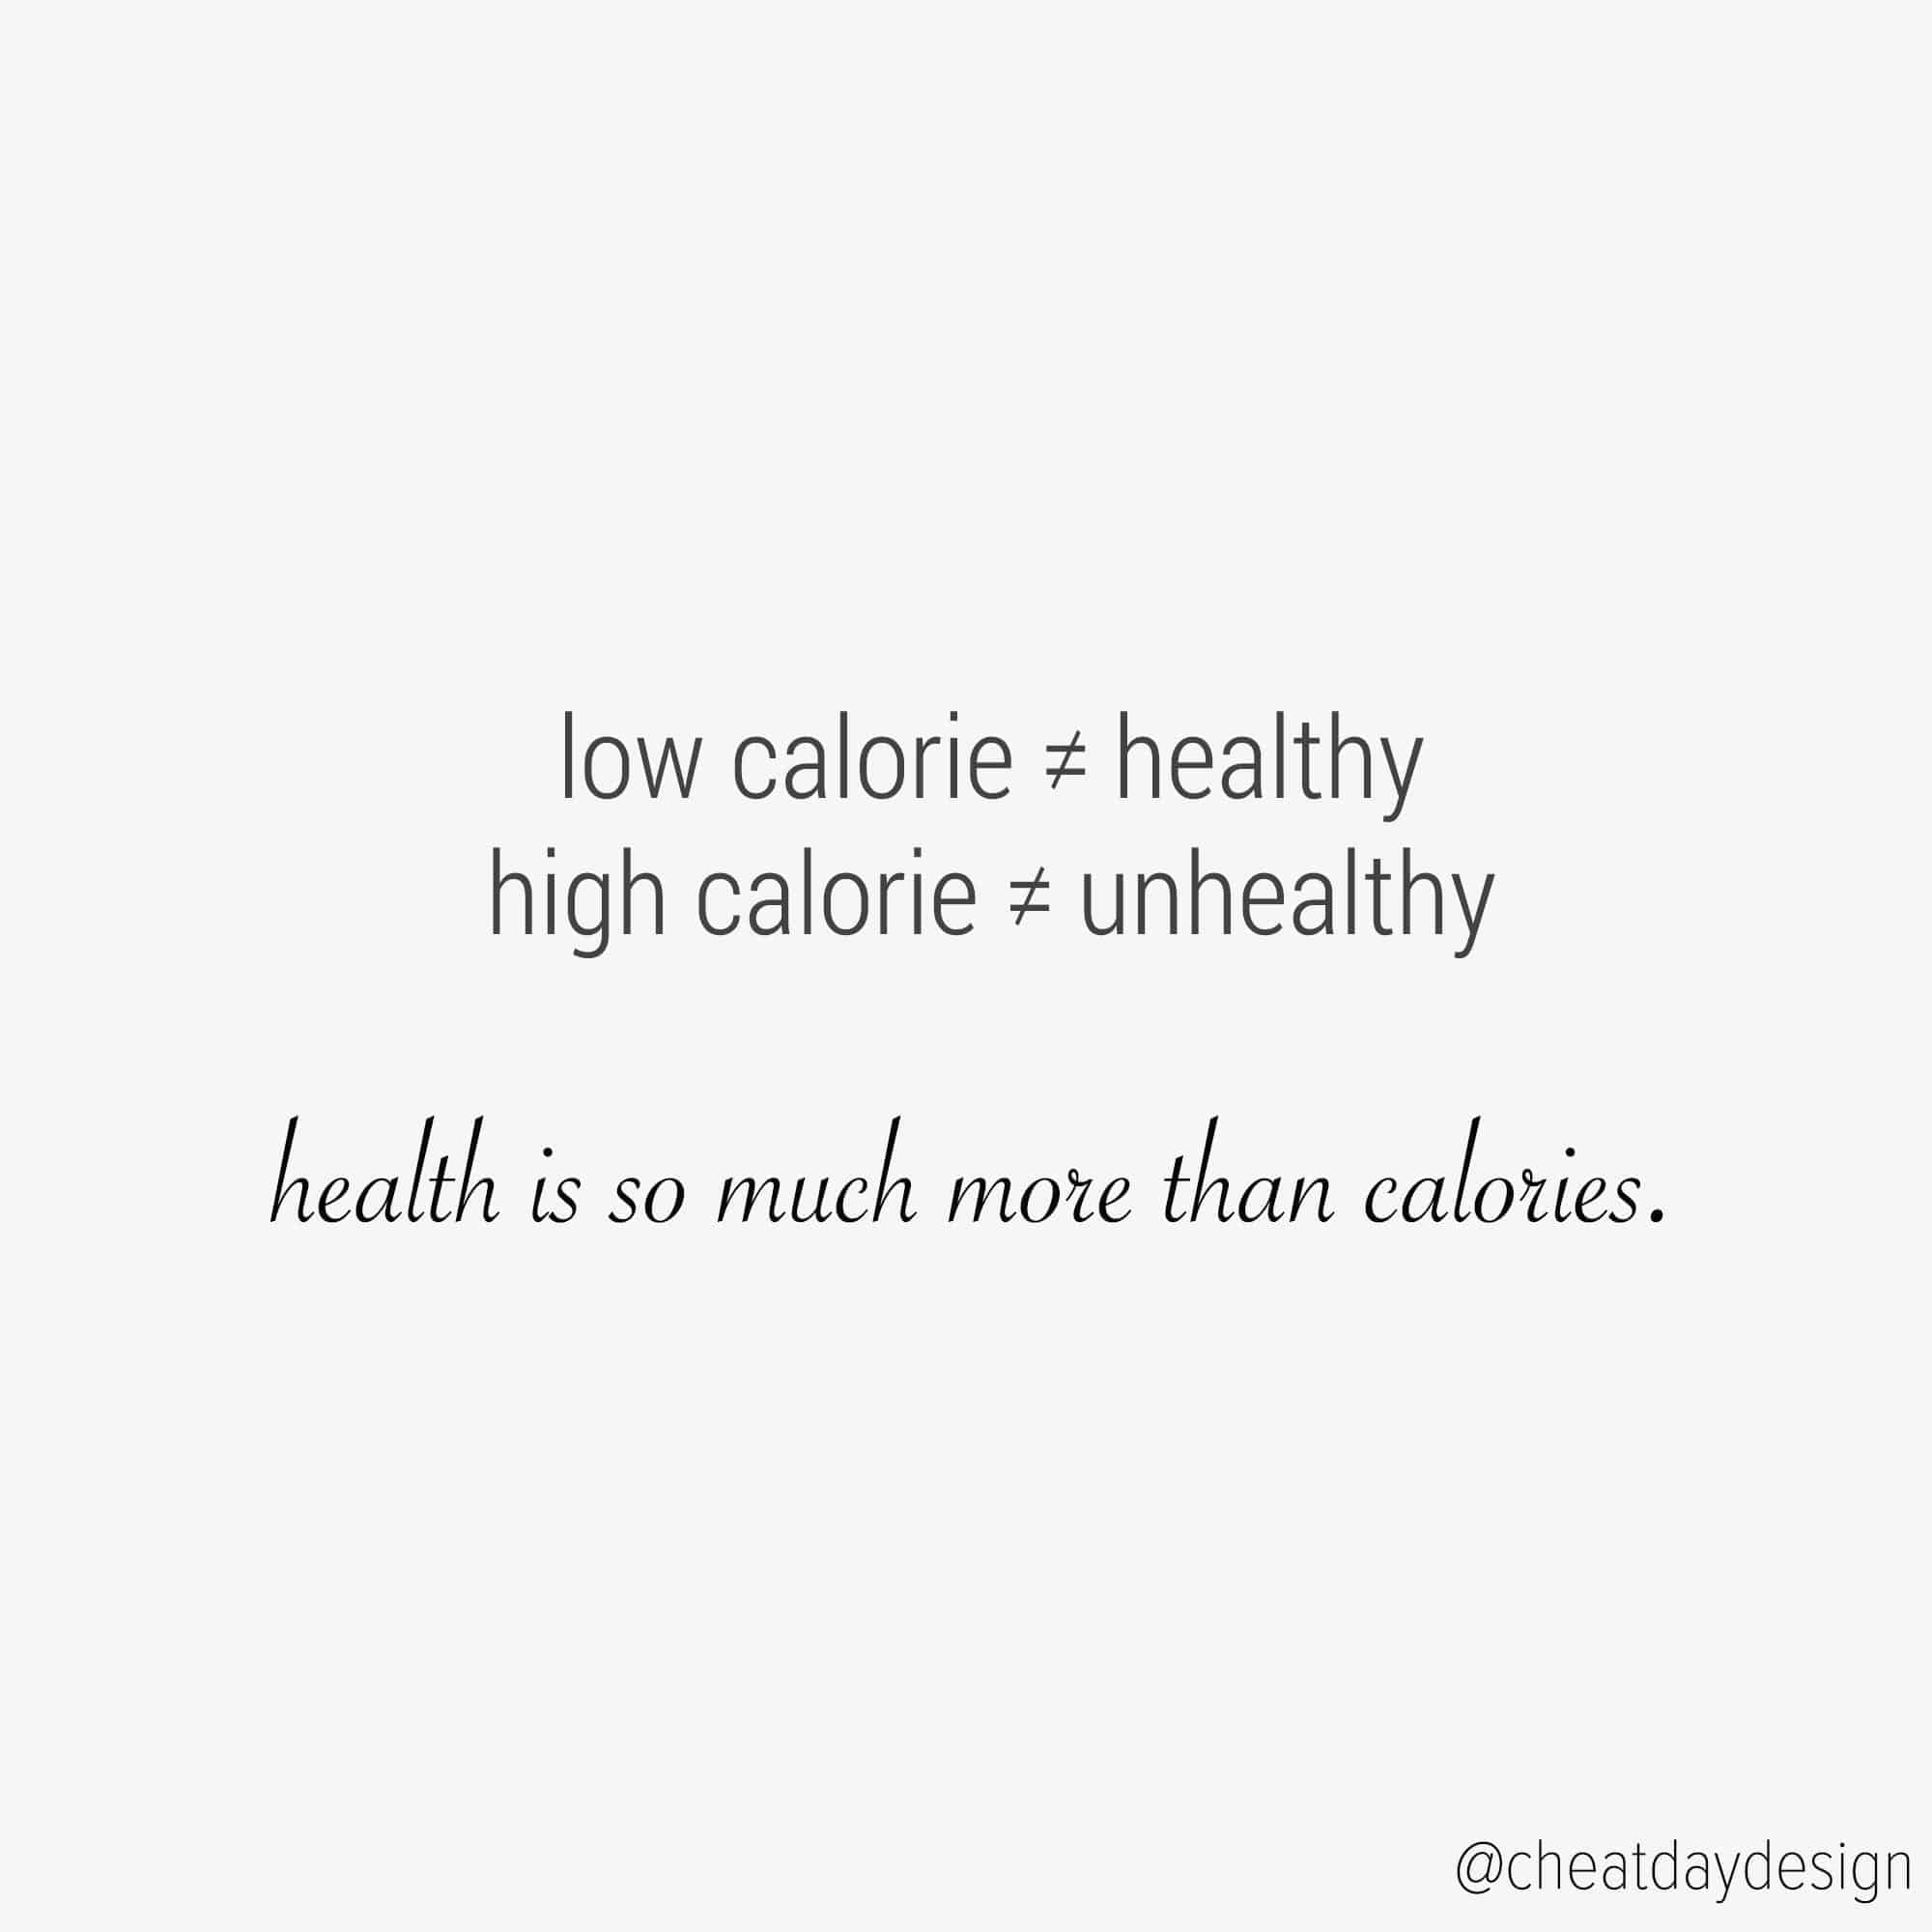 Low calorie isn't healthy